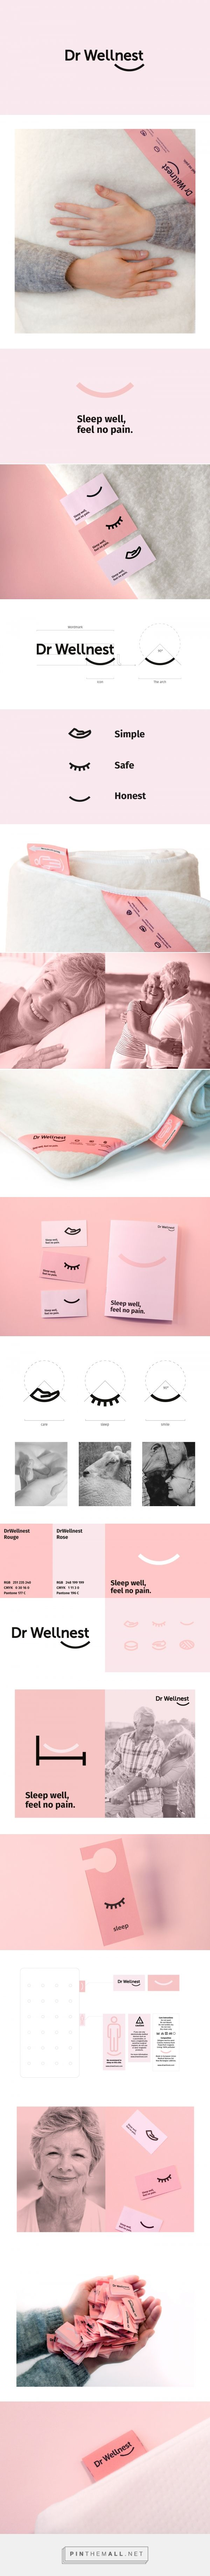 DrWellnest — Magnetic Matresses from Norway on Behance. Branding, brand identity, pink, minimal, visual identity